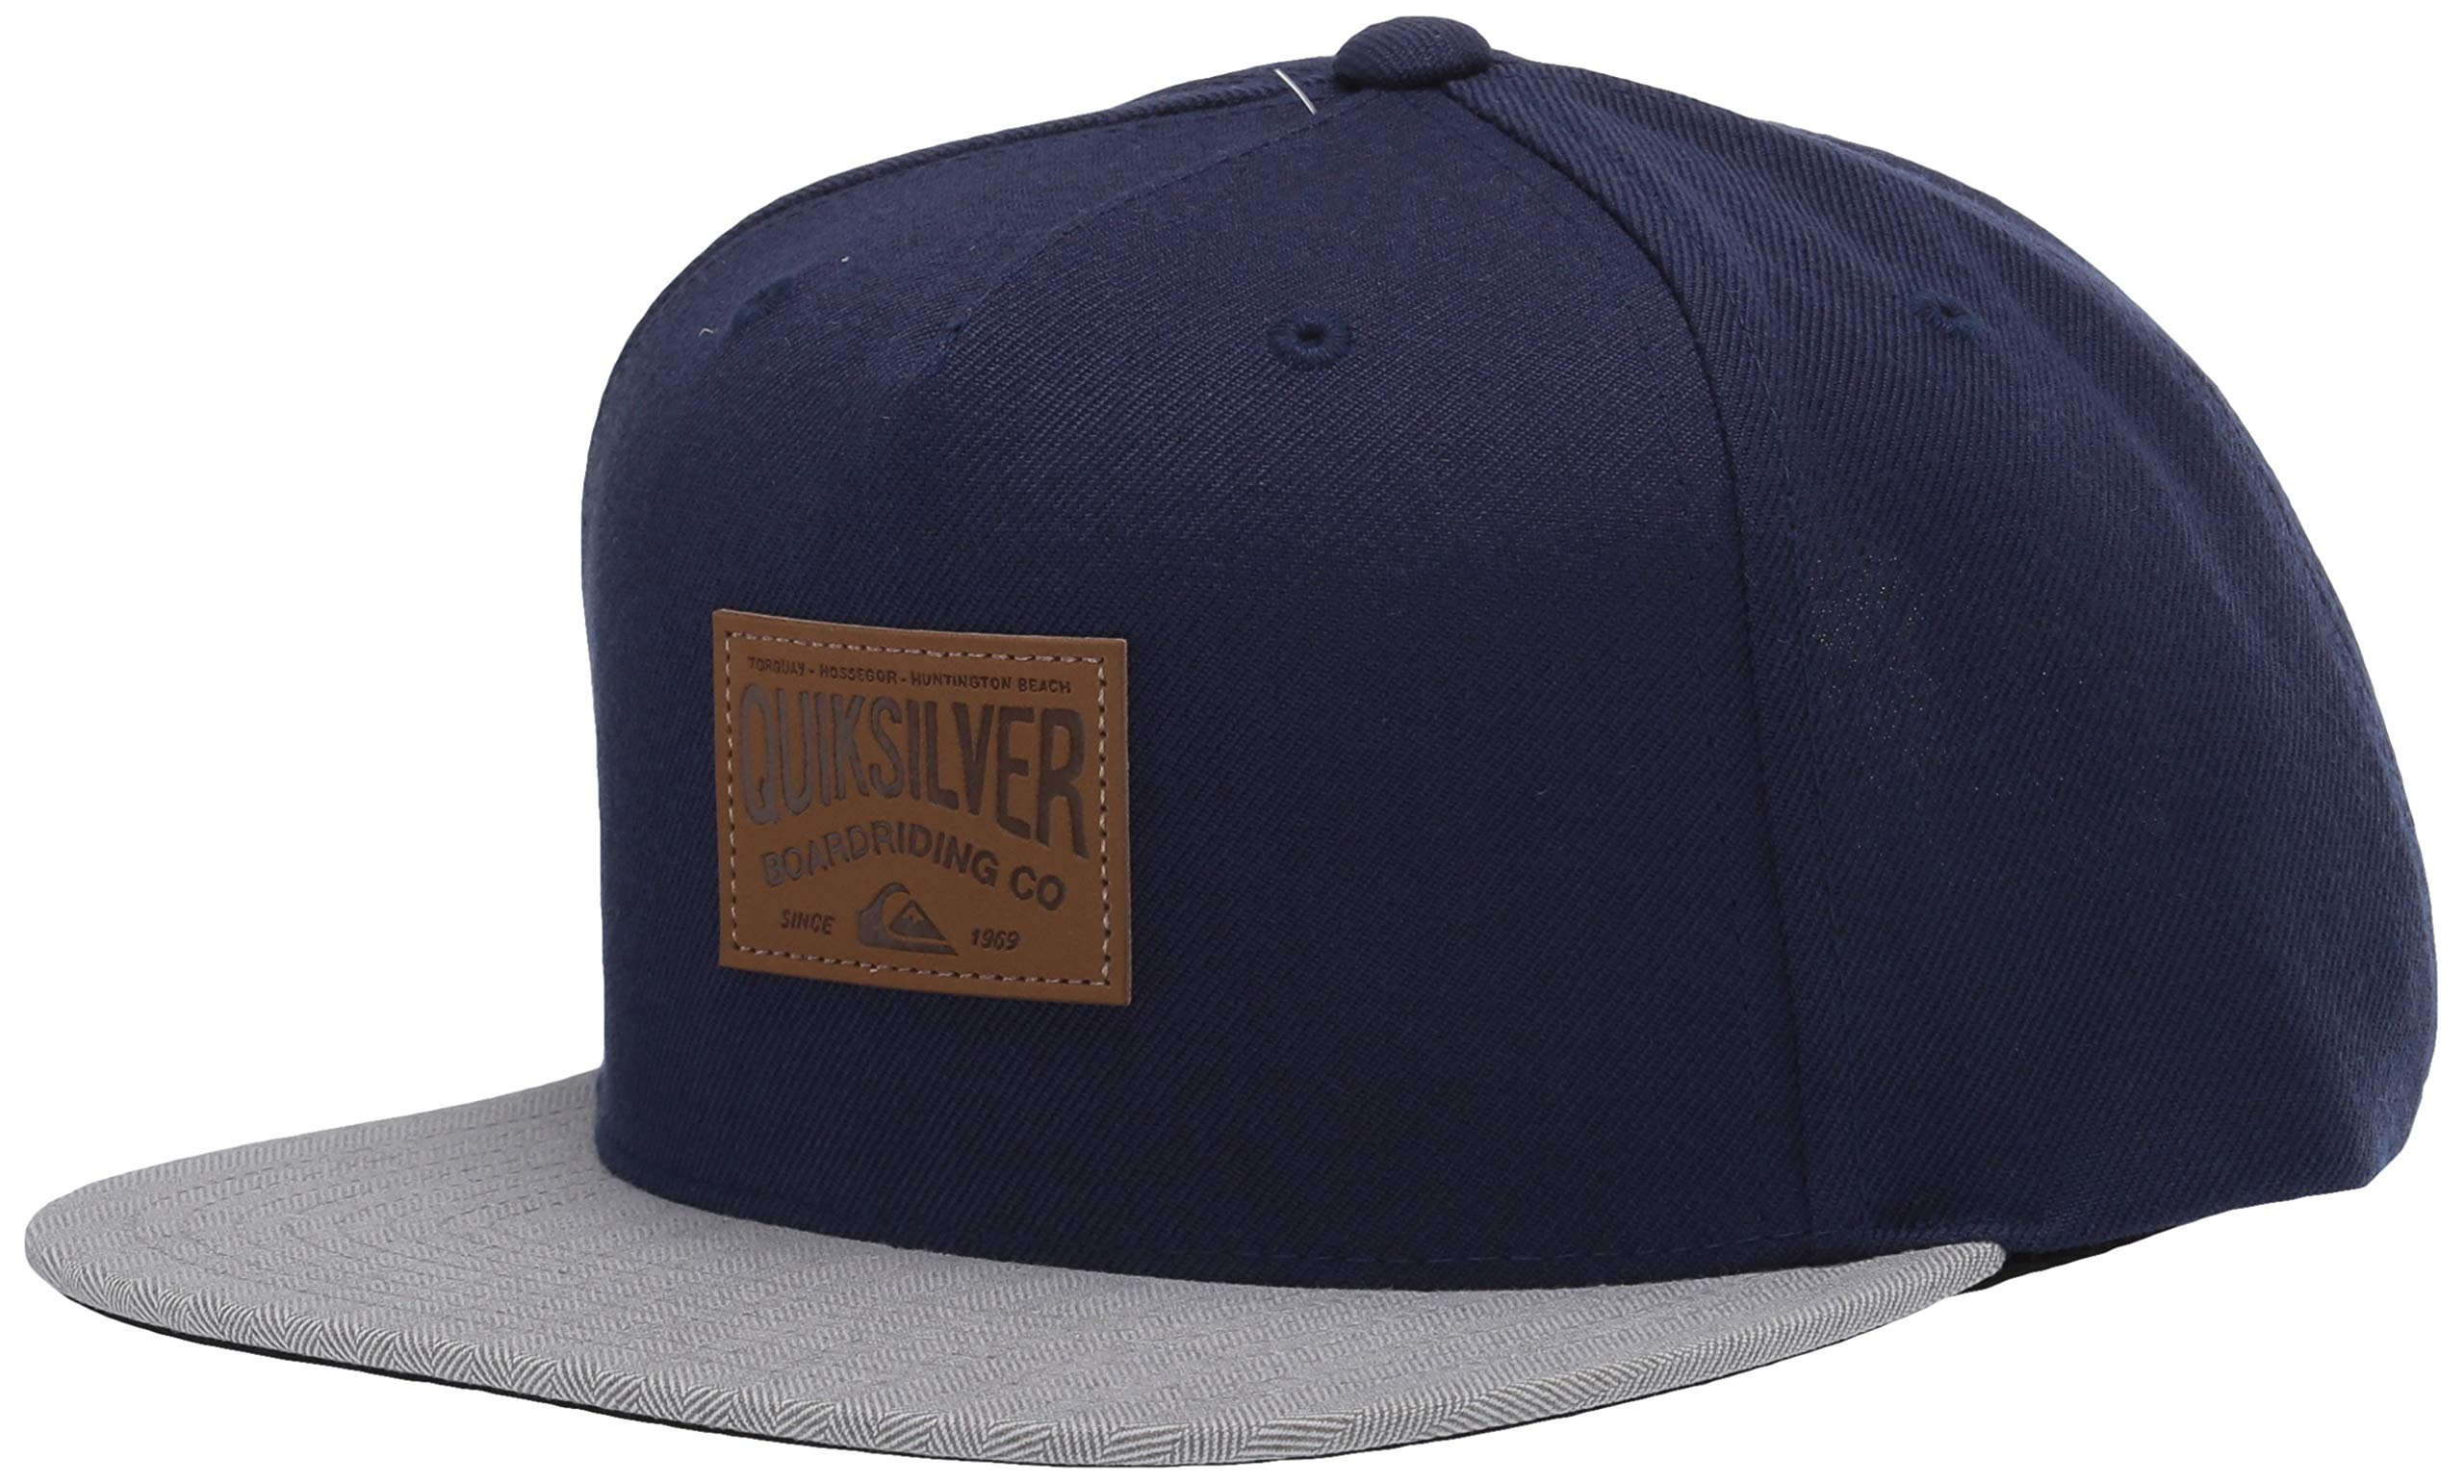 Quiksilver Men's Billside Hat